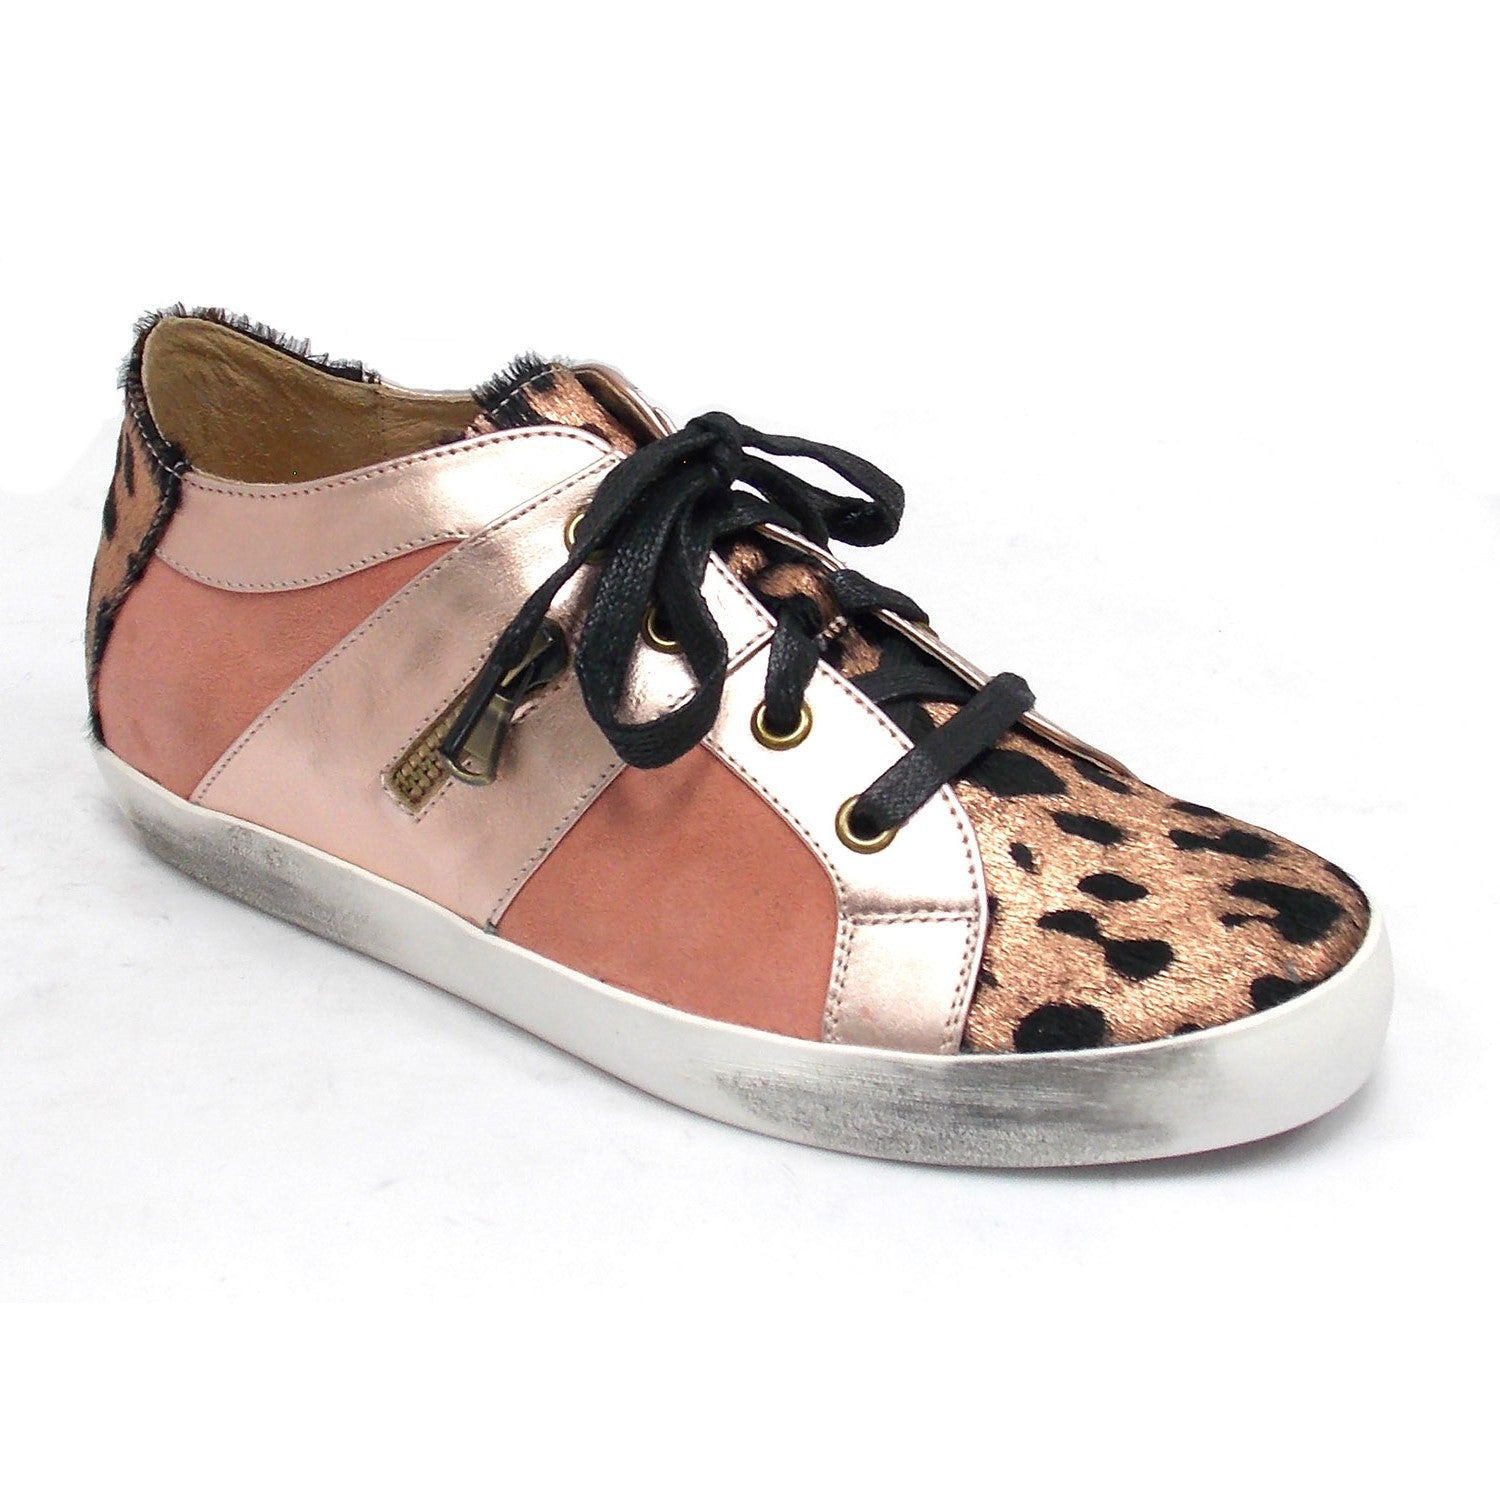 Django & Juliette Essex Ladies Sneaker